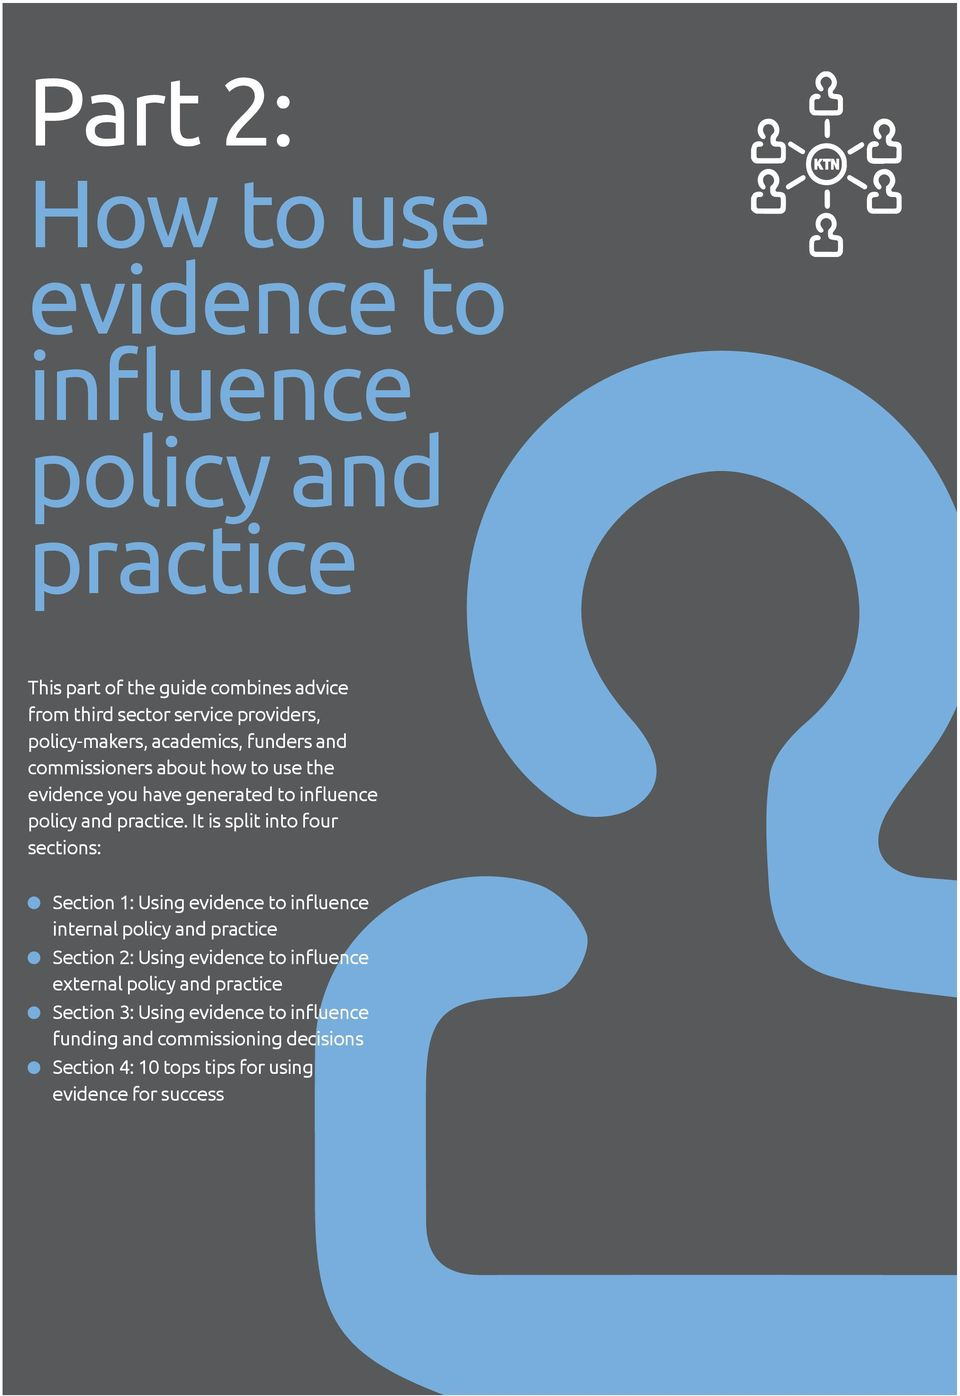 It is split into four sections: Section 1: Using evidence to influence internal policy and practice Section 2: Using evidence to influence